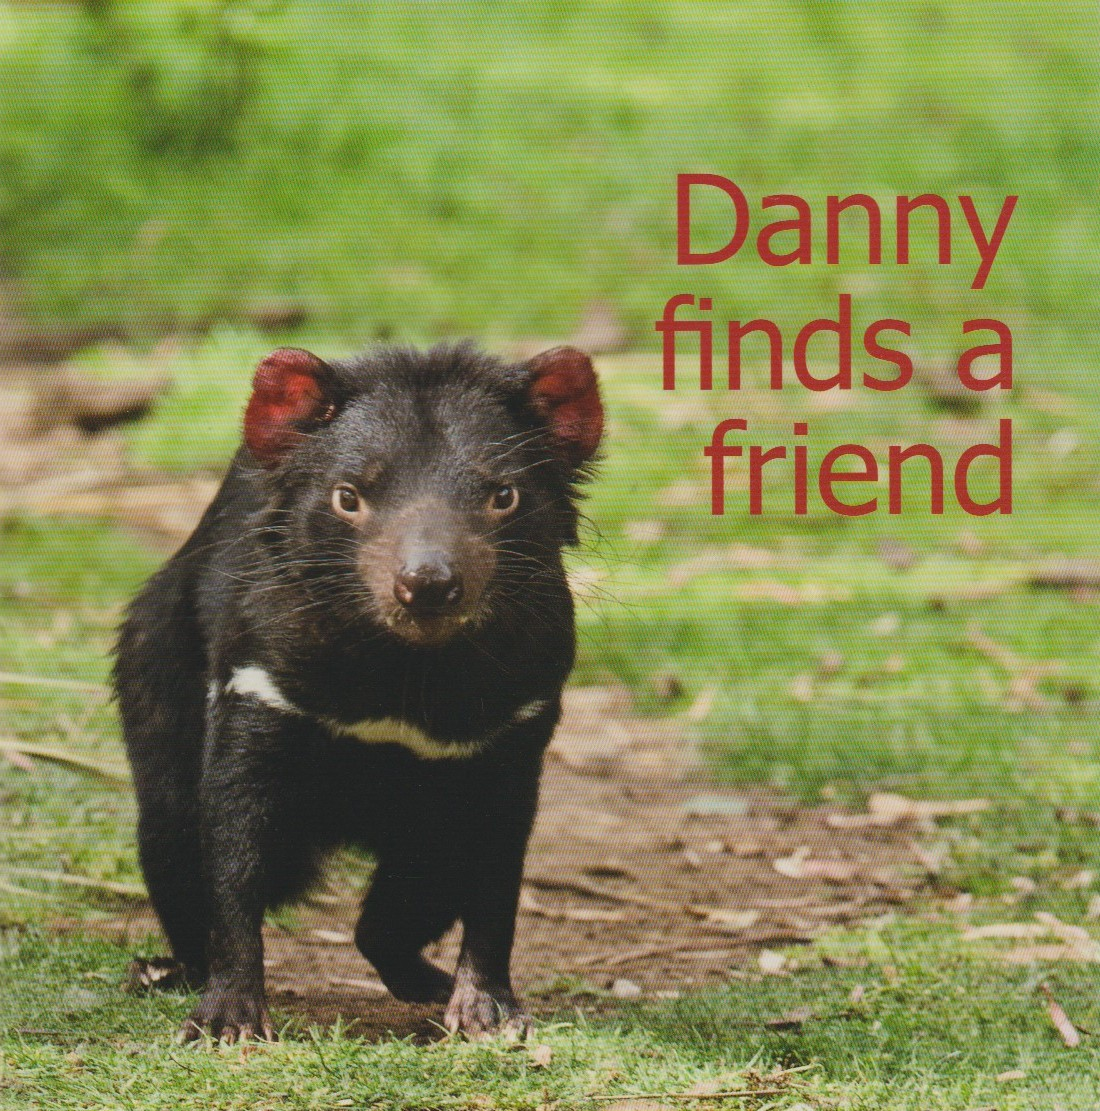 Danny finds a Friend - children's book about a Tasmanian Devil